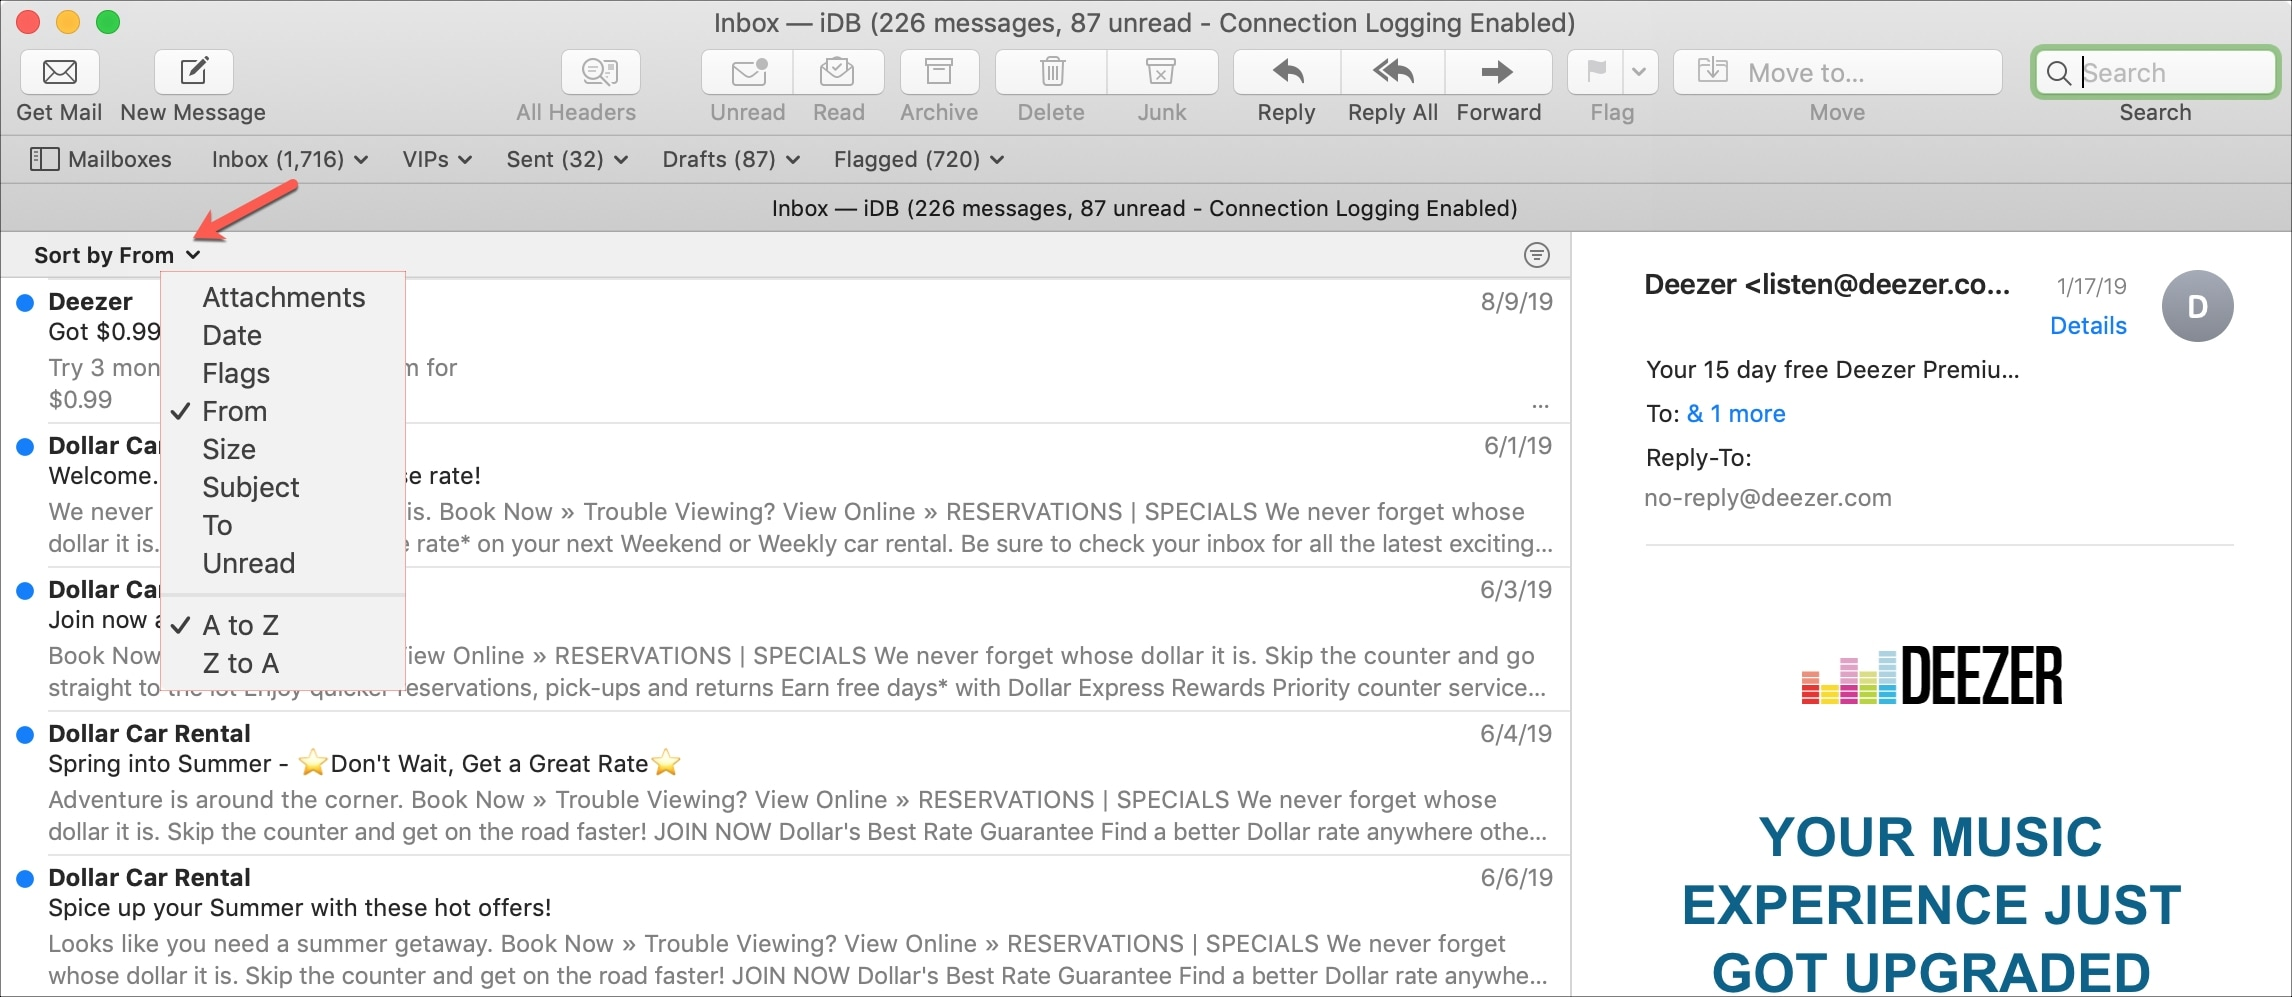 Sort Mail by From Default Layout